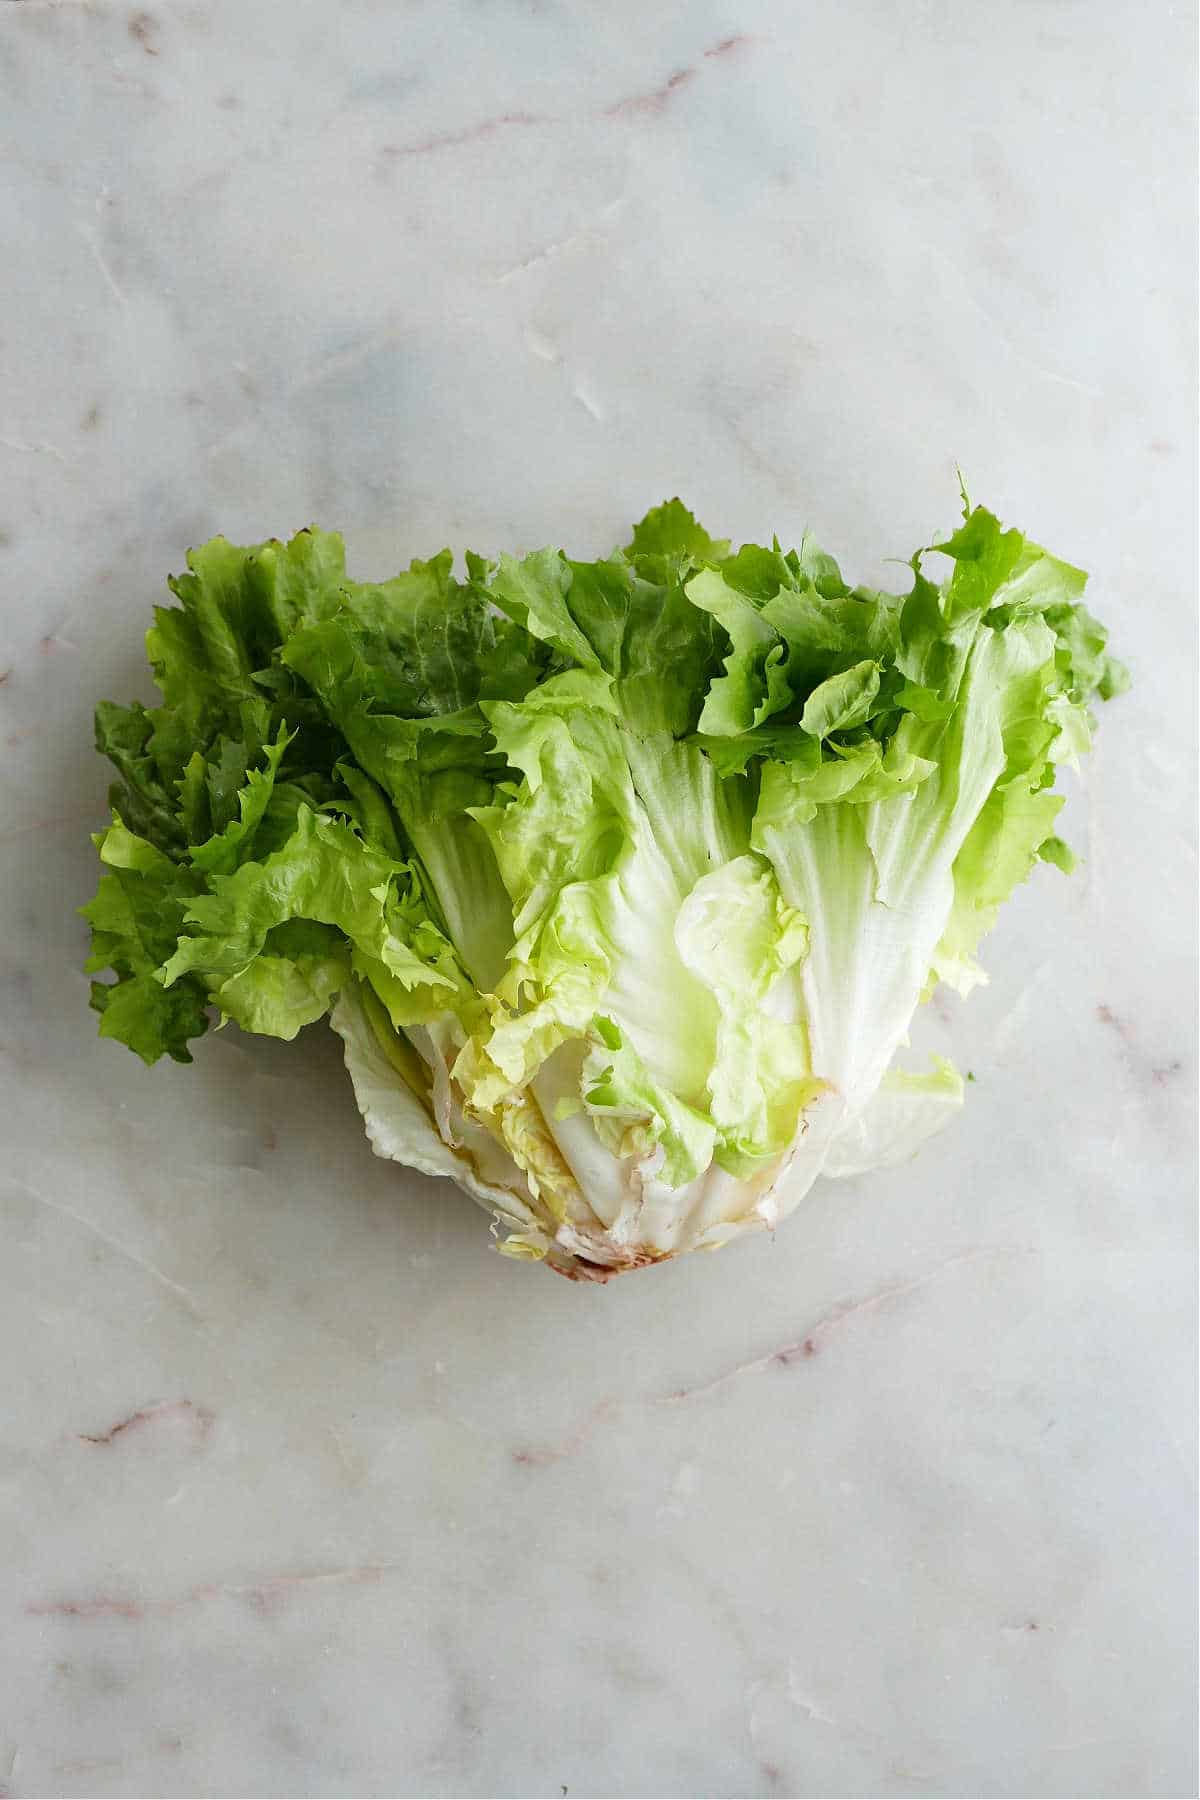 head of escarole with green leaves on a white counter